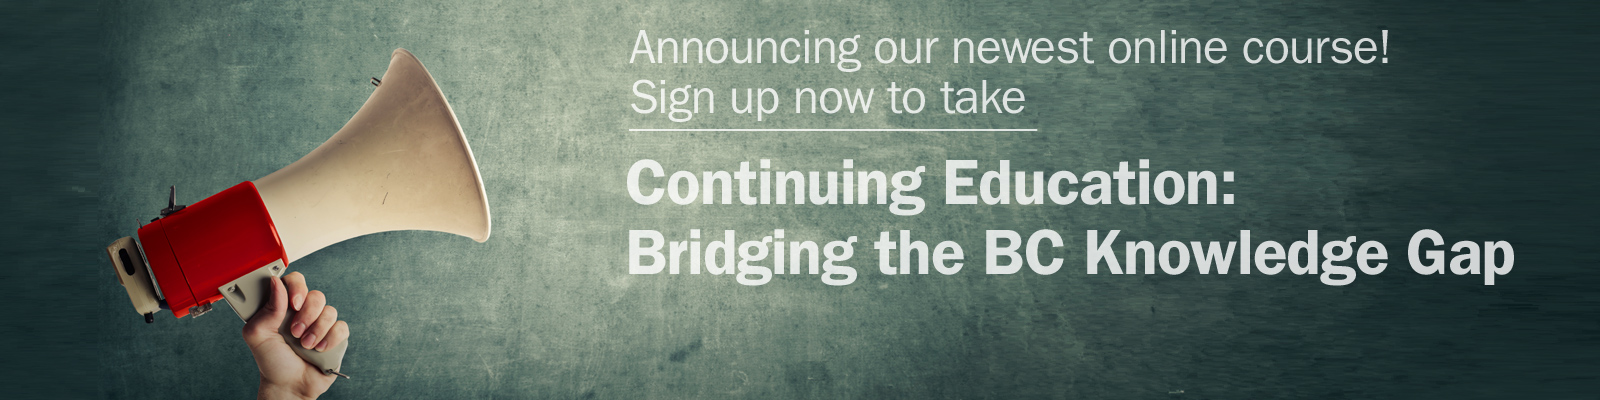 Continuing Education: Bridging the BC Knowledge Gap